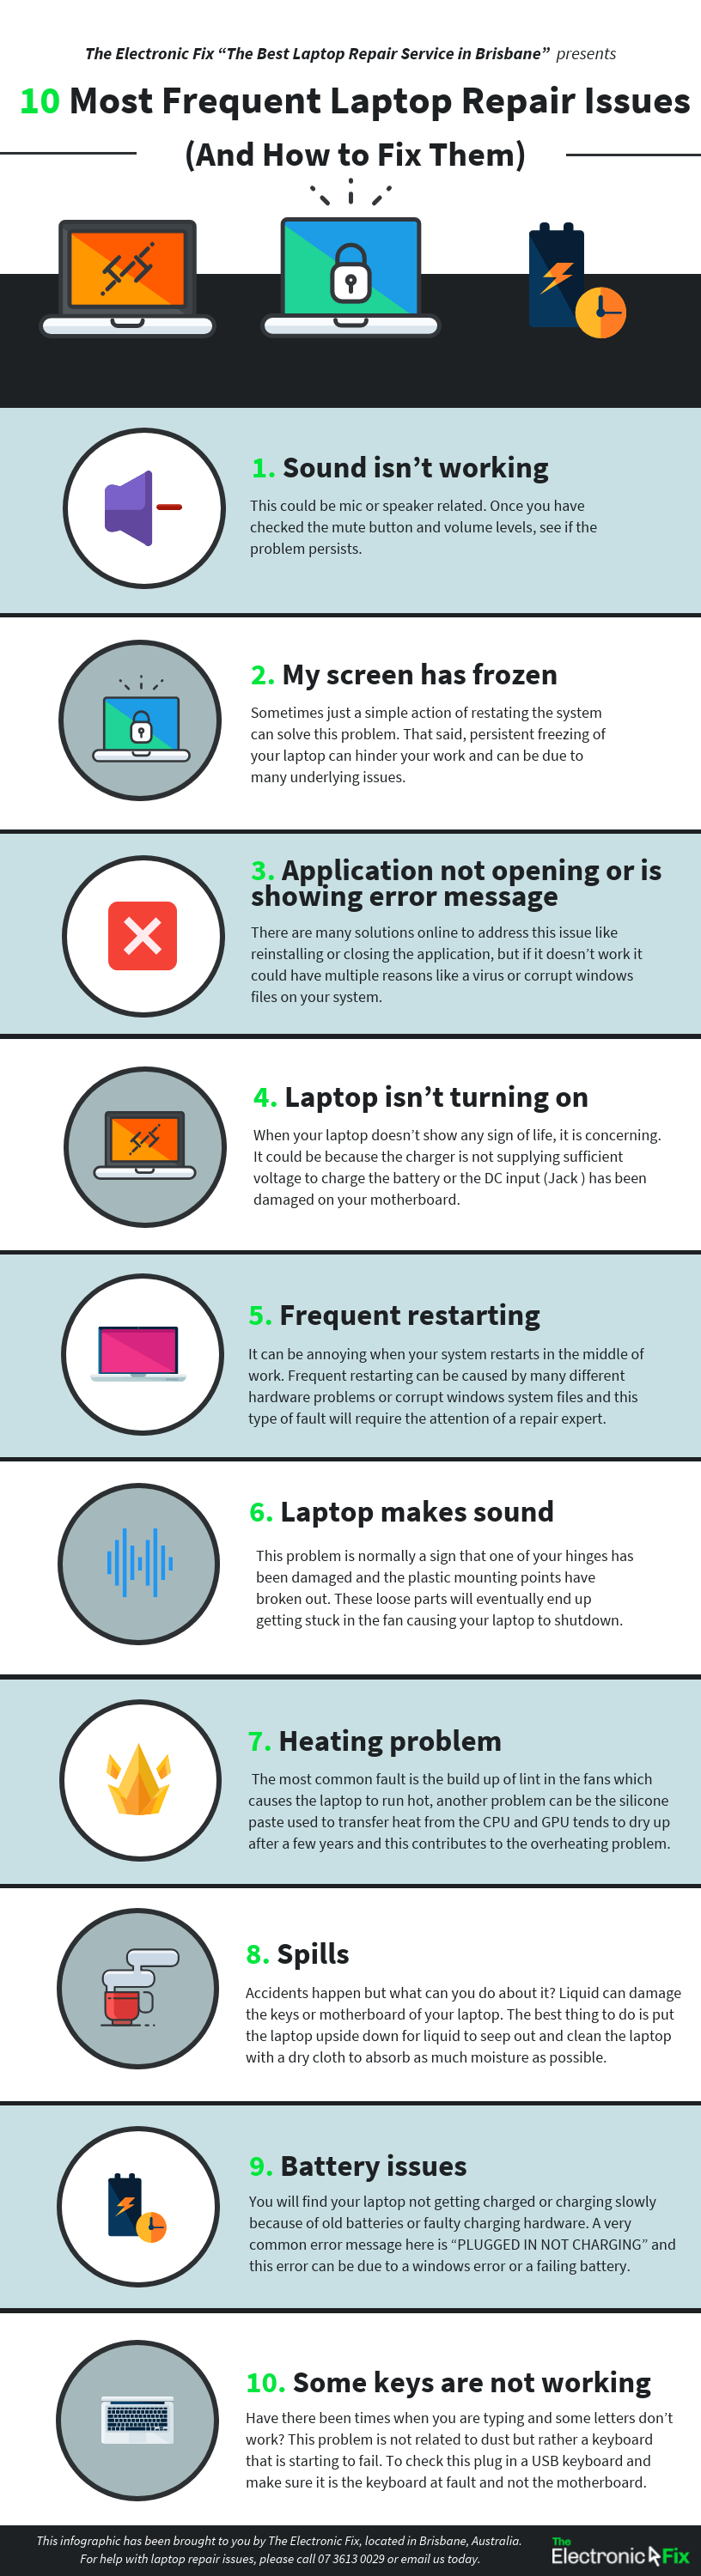 laptop-repair-issues-infographic-plaza